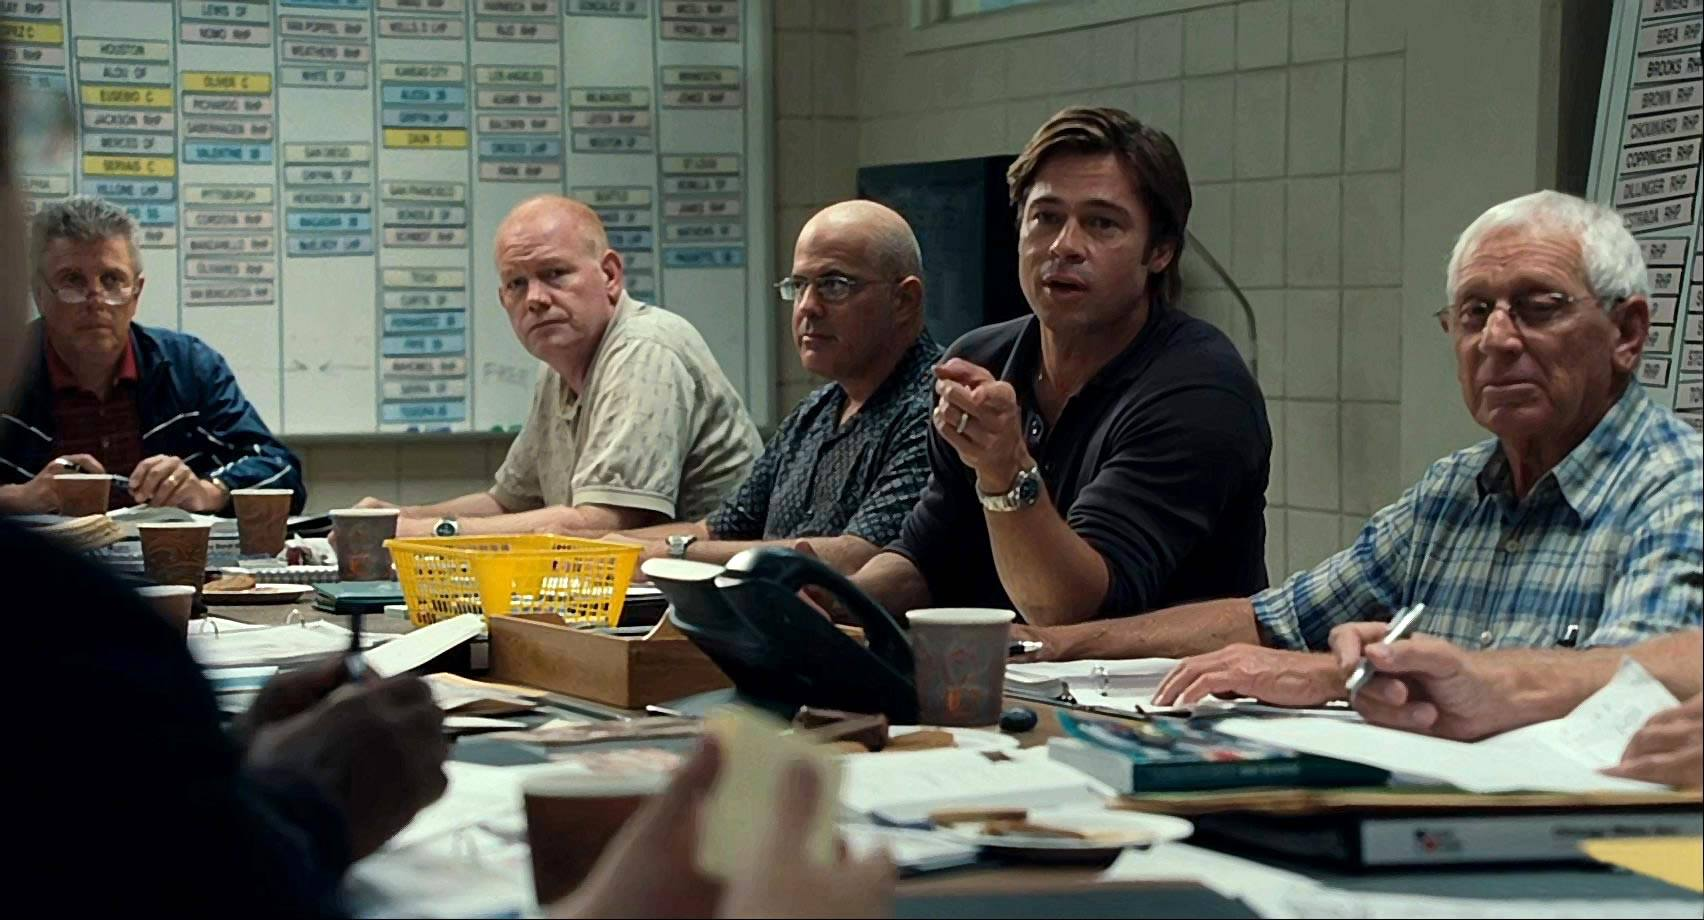 In Moneyball, if walks are good, you don't give an intentional walk to an opposing team